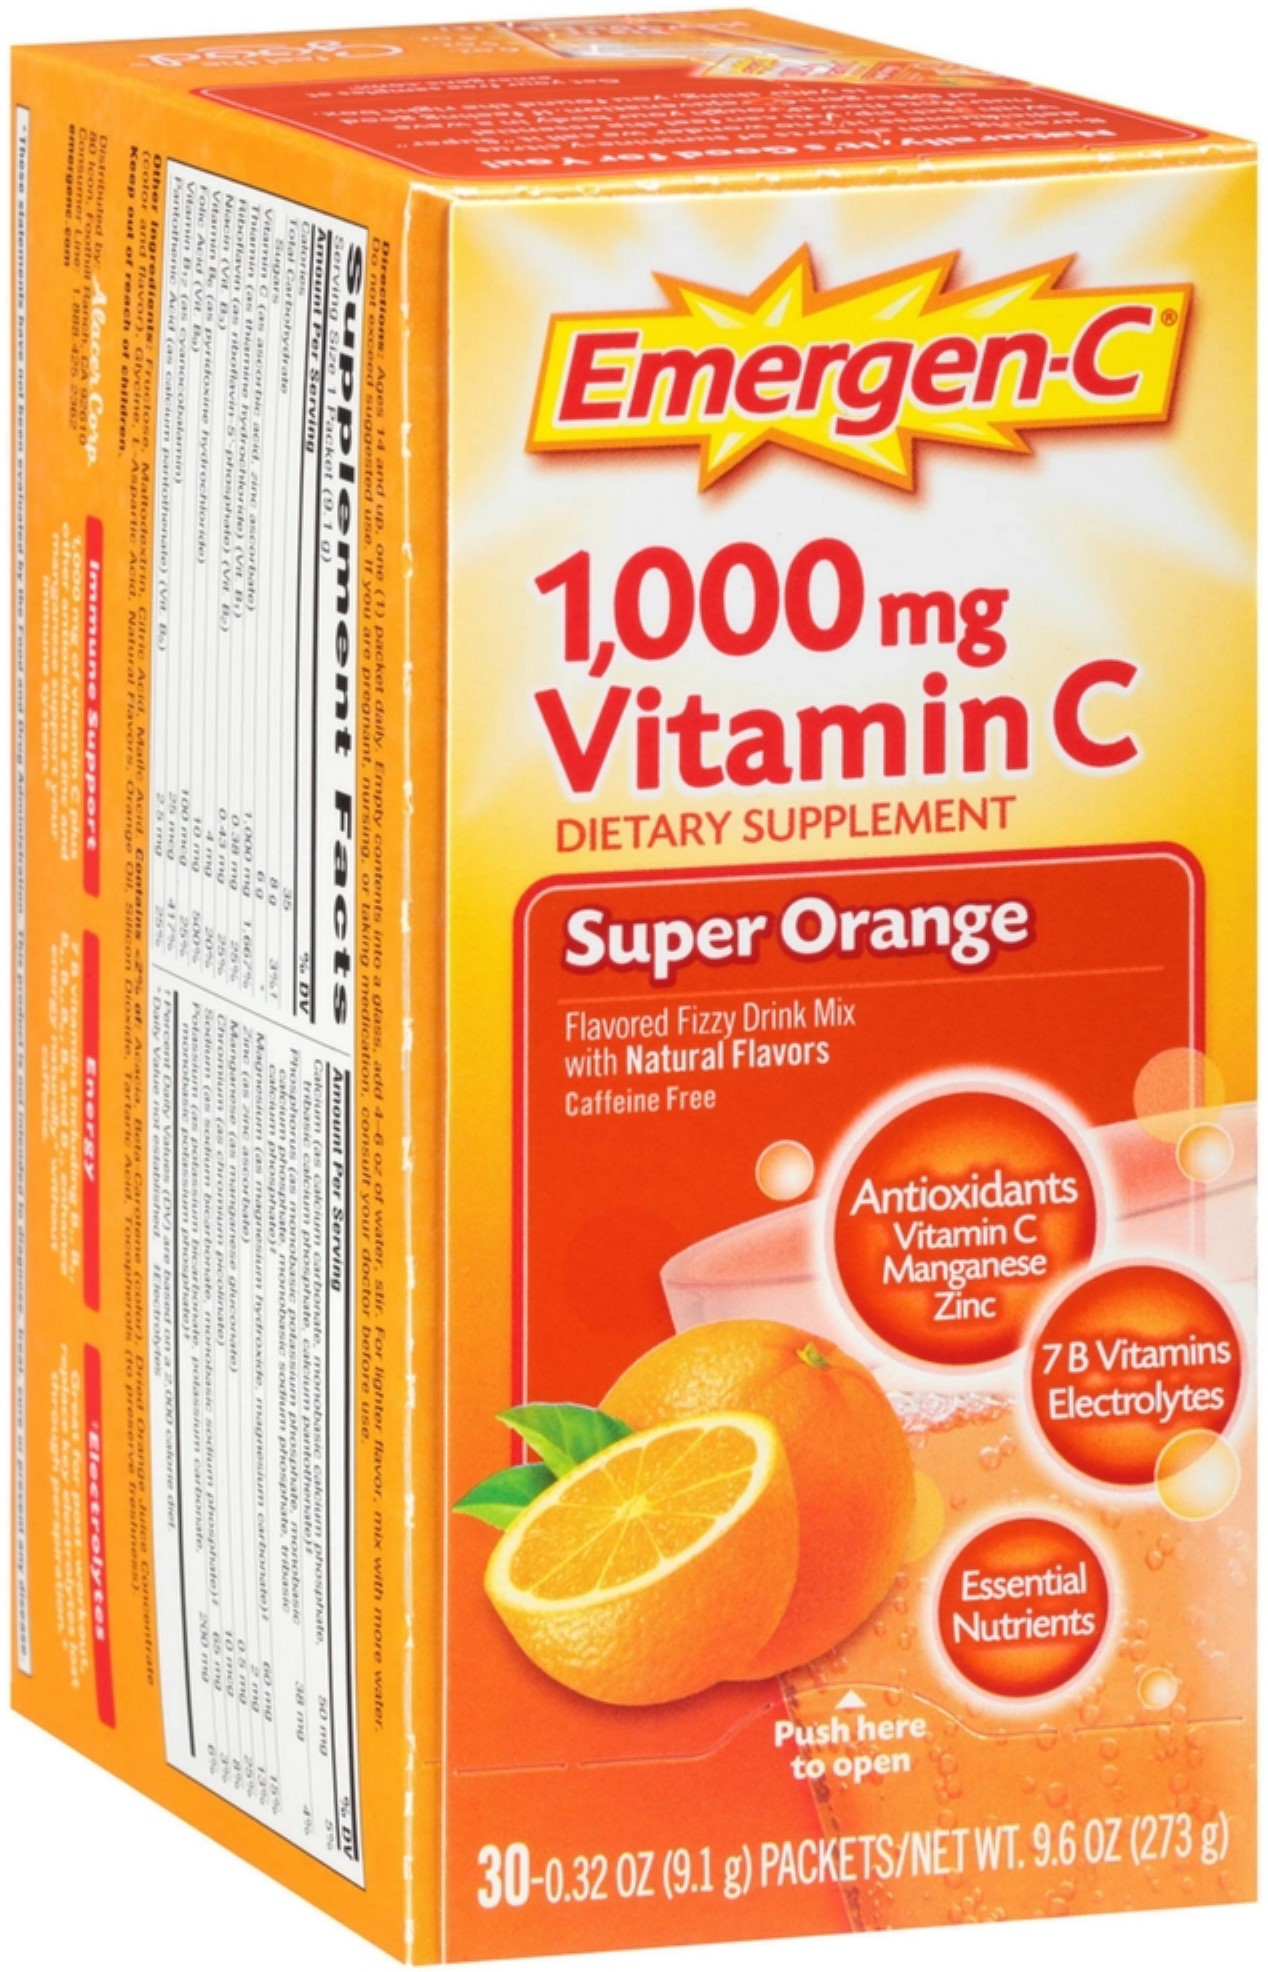 Emergen-C Vitamin C Flavored Fizzy Drink Mix Packets, Super Orange 30 ea (Pack of 4) by